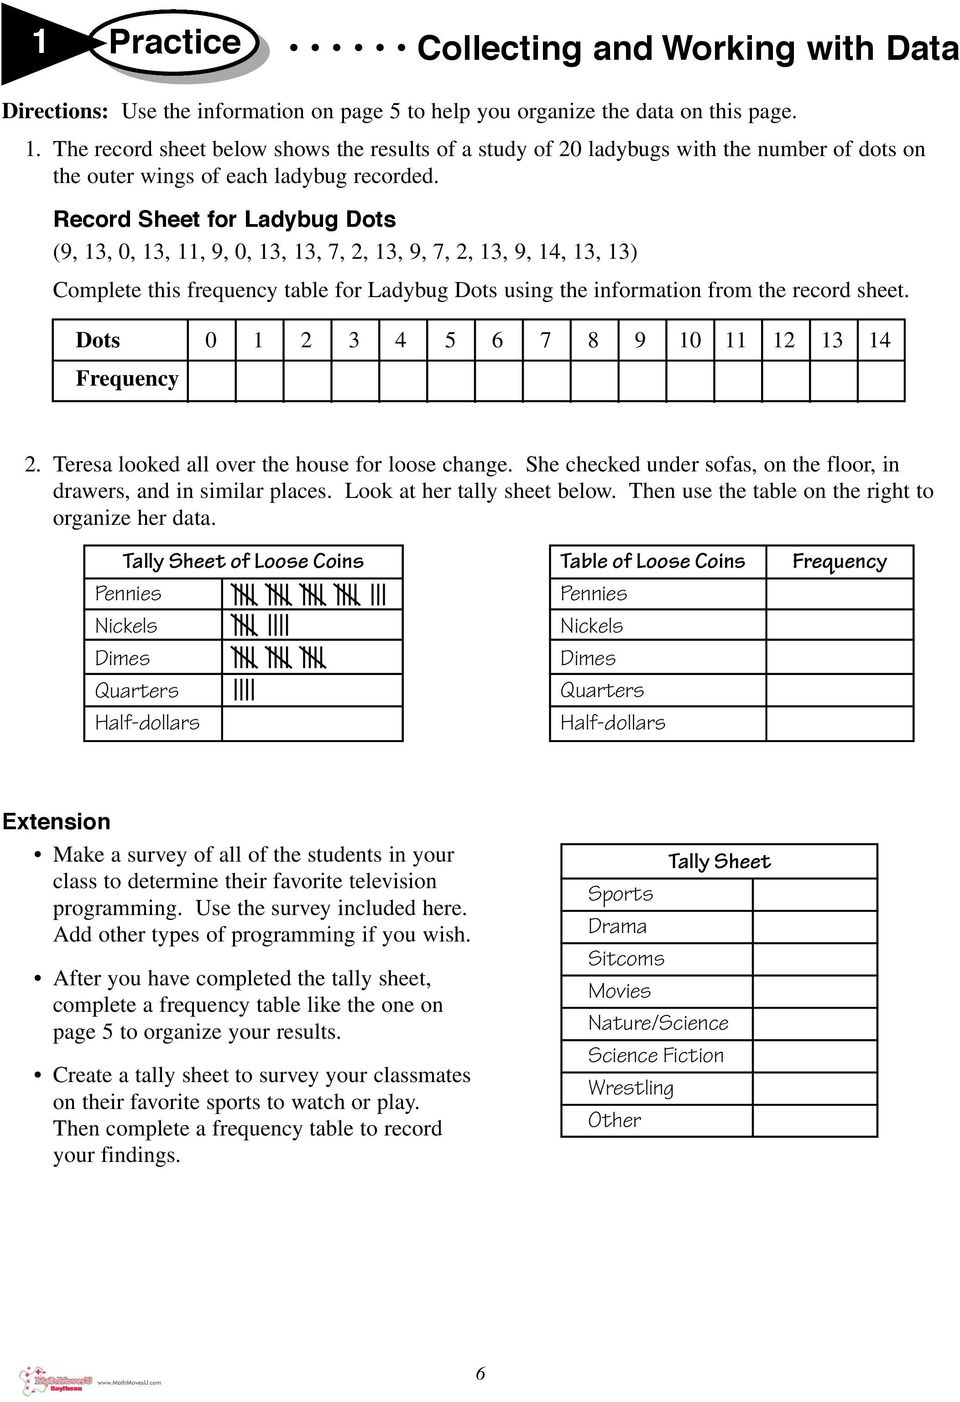 worksheet Tally Chart And Frequency Table Worksheets 1 practice collecting and working with data pdf record sheet for ladybug dots 9 13 11 9